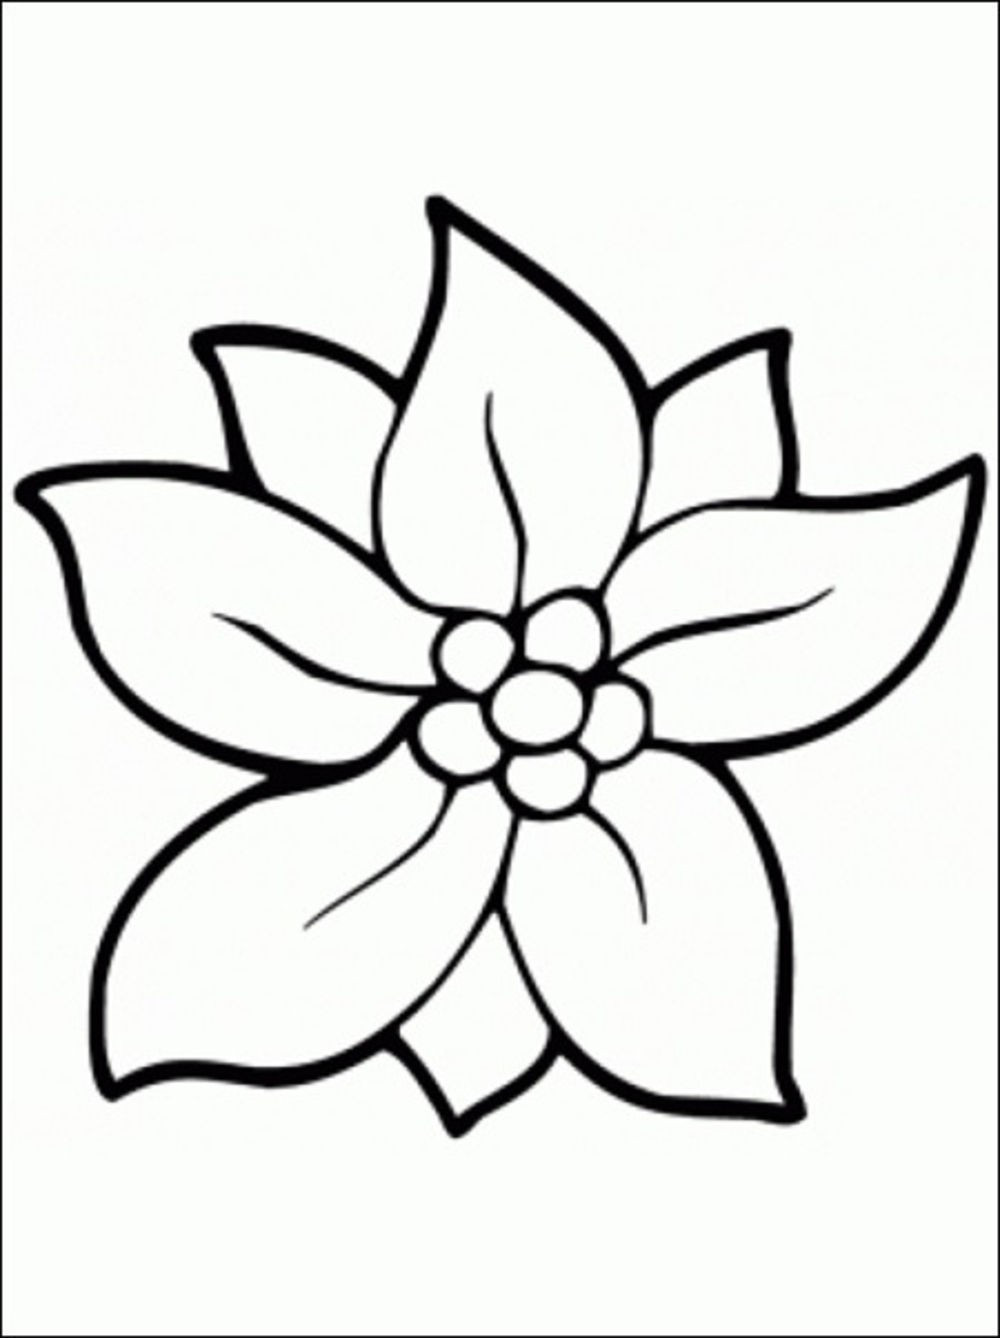 Best ideas about Flower Printable Coloring Sheets . Save or Pin Flowers Coloring Pages Bestofcoloring Now.